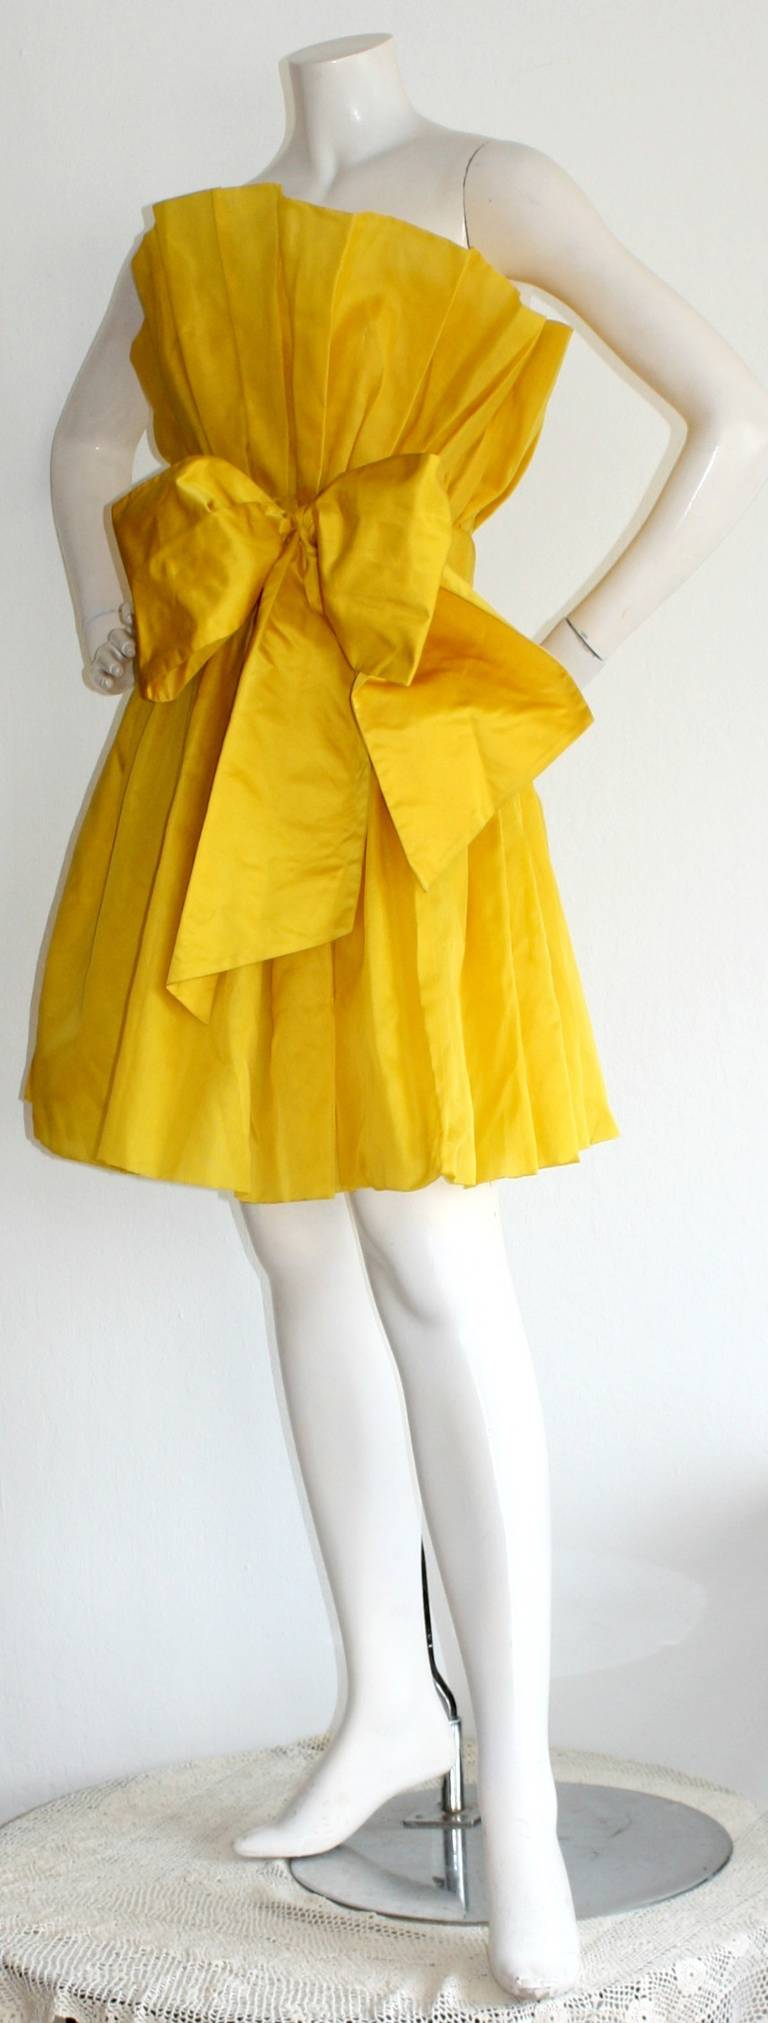 James Purcell Stunning Vintage Origami Fan Dress 6